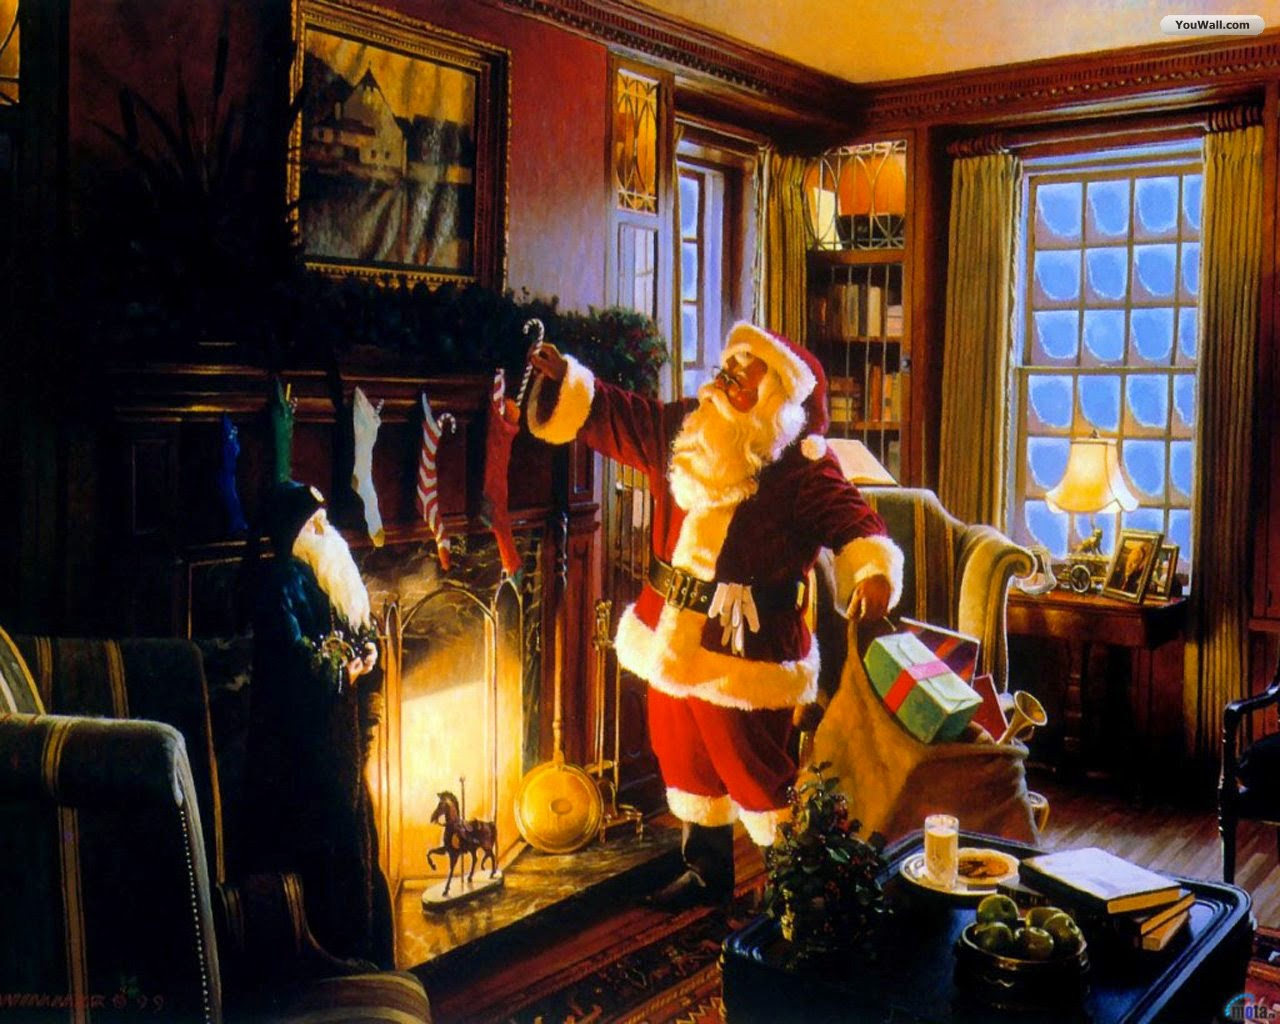 santa_claus-places-gifts-secretly-near-xmas-tree-image-picture-1280x1024.jpg